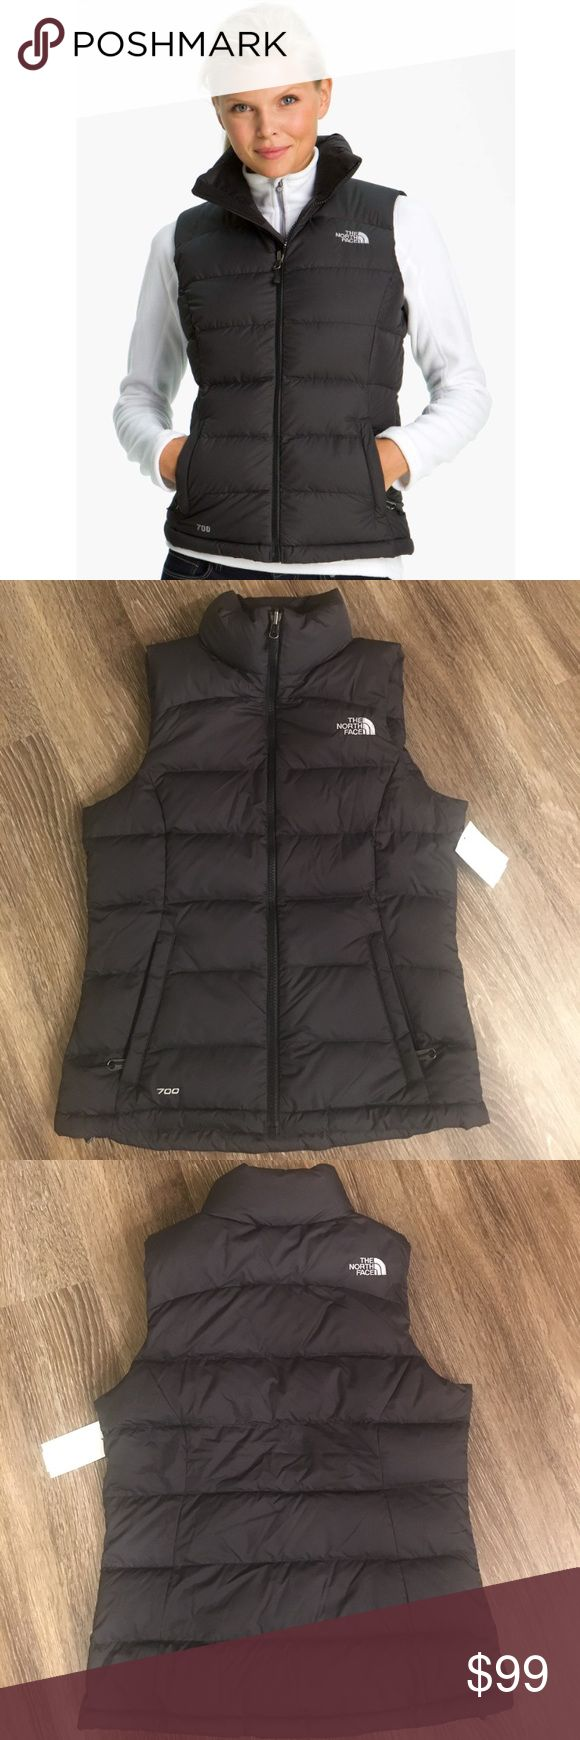 New The North Face Nuptse 2 Quilted Down Vest XS A more feminine, shapely fit updates a coveted cold-weather favorite filled with lofty 700-fill down and quilted with durable sewn-through construction for dependable, consistent warmth in the coldest weather.  Zip-in compatible. Double-layer panels at shoulders. Brushed collar lining. Zip hand warmer pockets; internal zip chest pocket. Stows in side pocket. 700-fill goose down insulation NEW WITH PARTIAL TAGS ATTACHED. SIZE XSMALL. DARK GRAY…